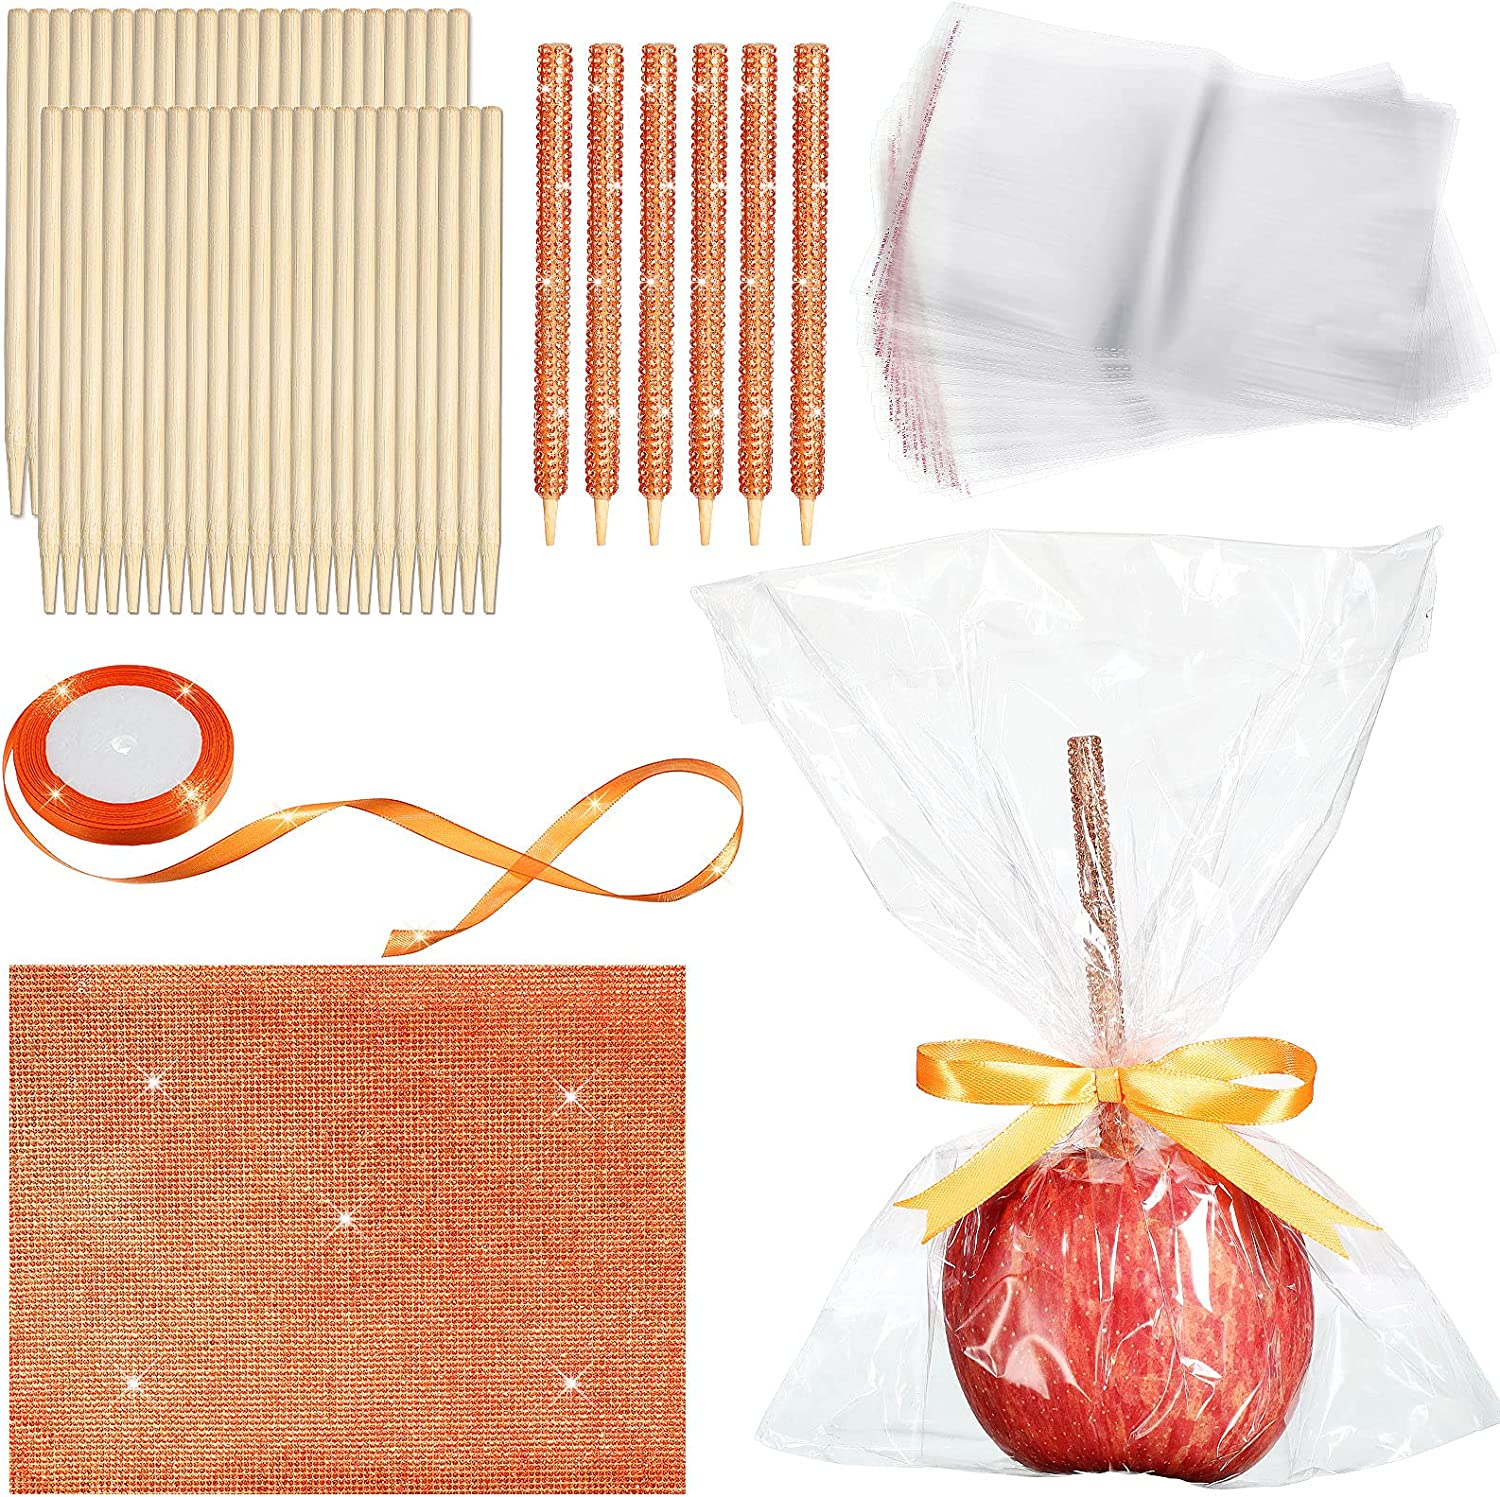 102 Pieces Candy Fruit Bamboo Sticks Set 50 Pieces Candy Fruit Skewer Sticks 50 Pieces Candy Cellophane Treat Bags Bling Rhinestone Sticker Self Adhesive Crystal Sheet and Orange Ribbon for Wrapping